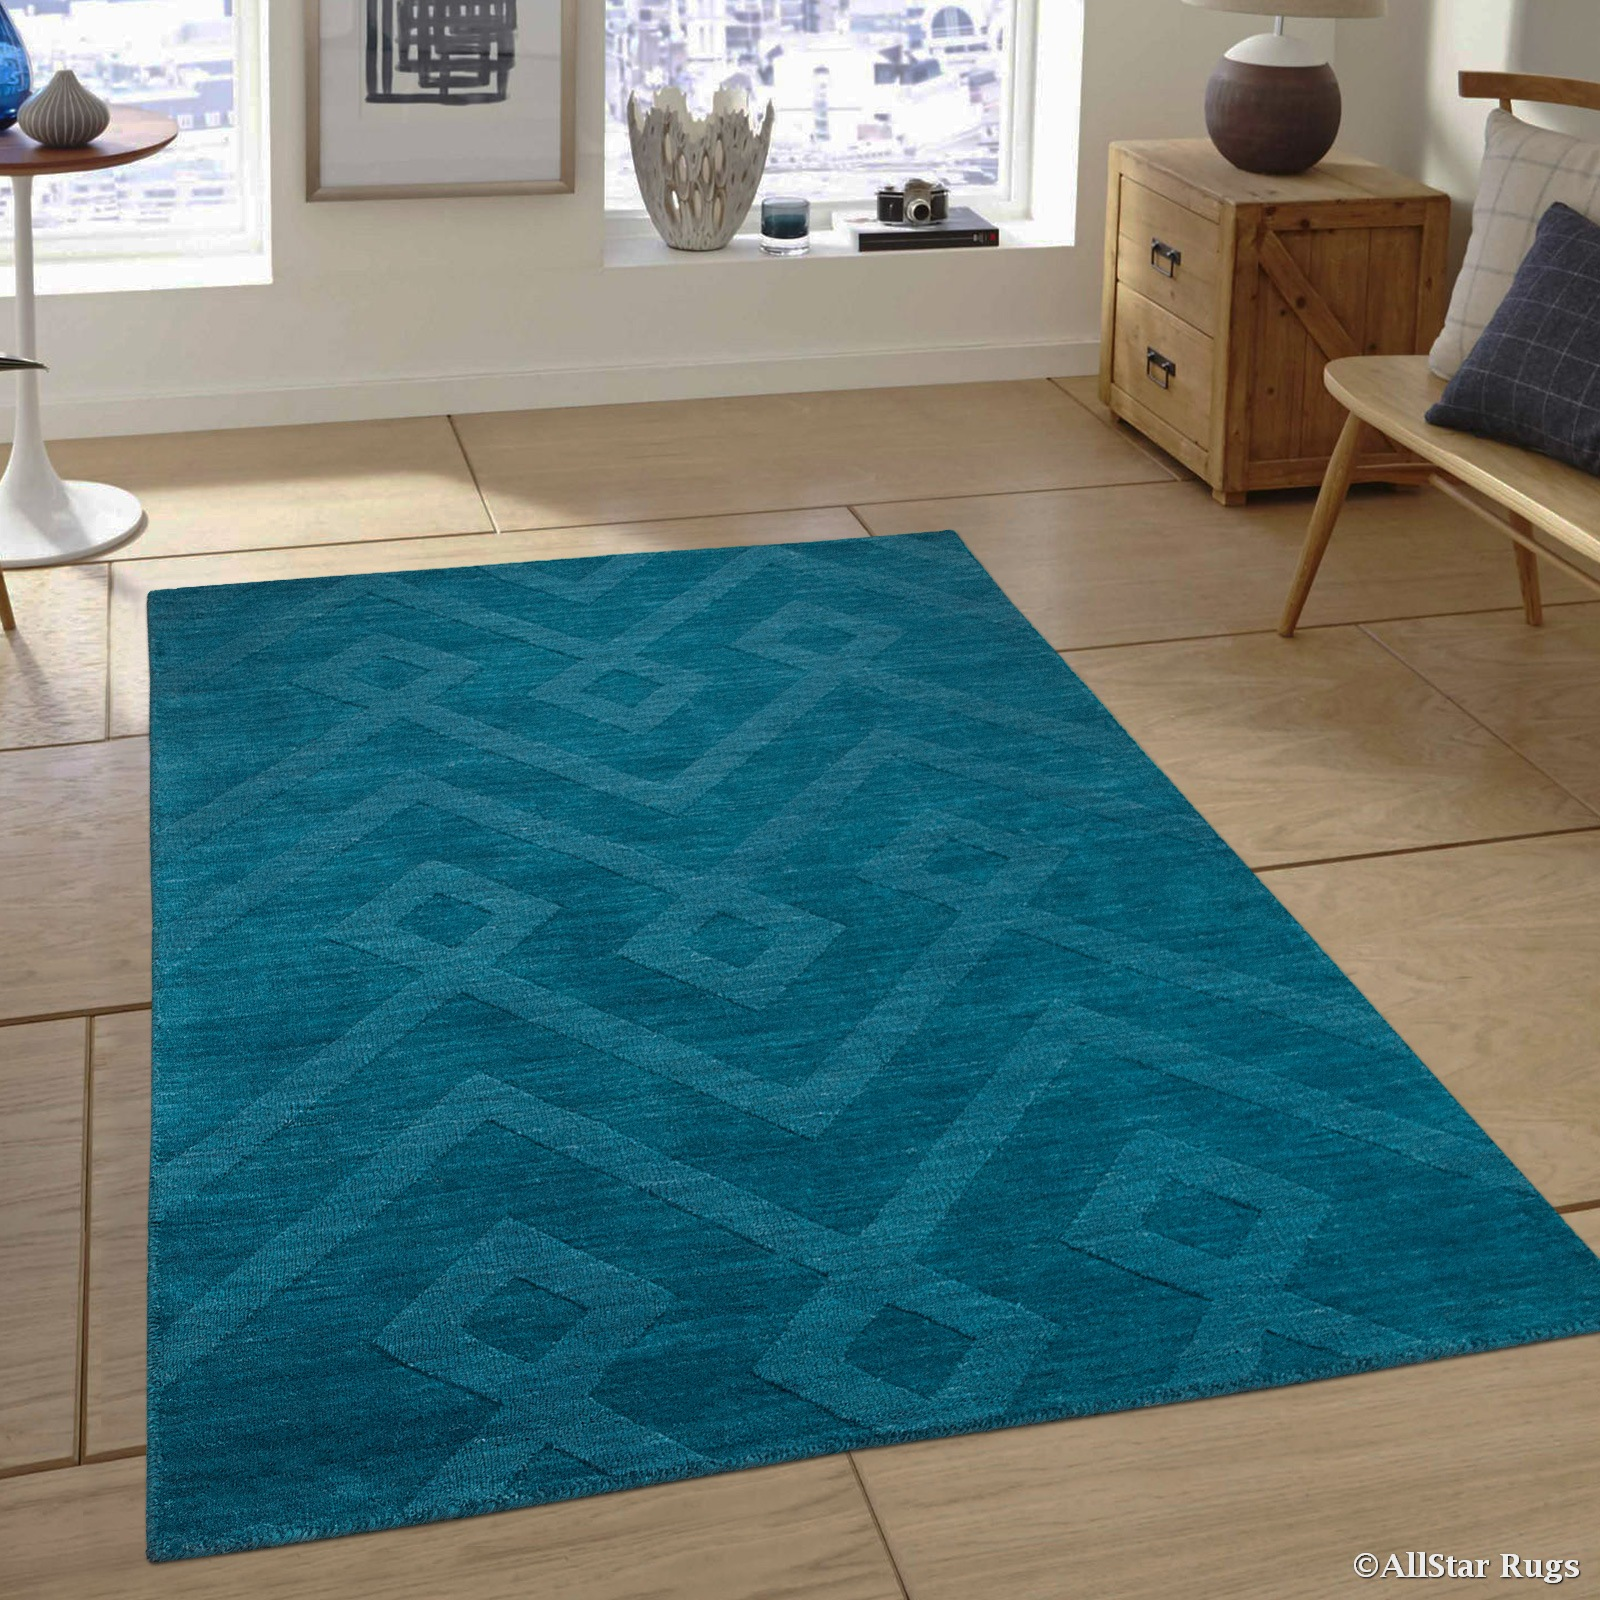 "Allstar Teal Area Rug. Hand Made High-End Extra Soft Natural Wool with Hand Craving Designs (7' 11"" x 9' 11"")"